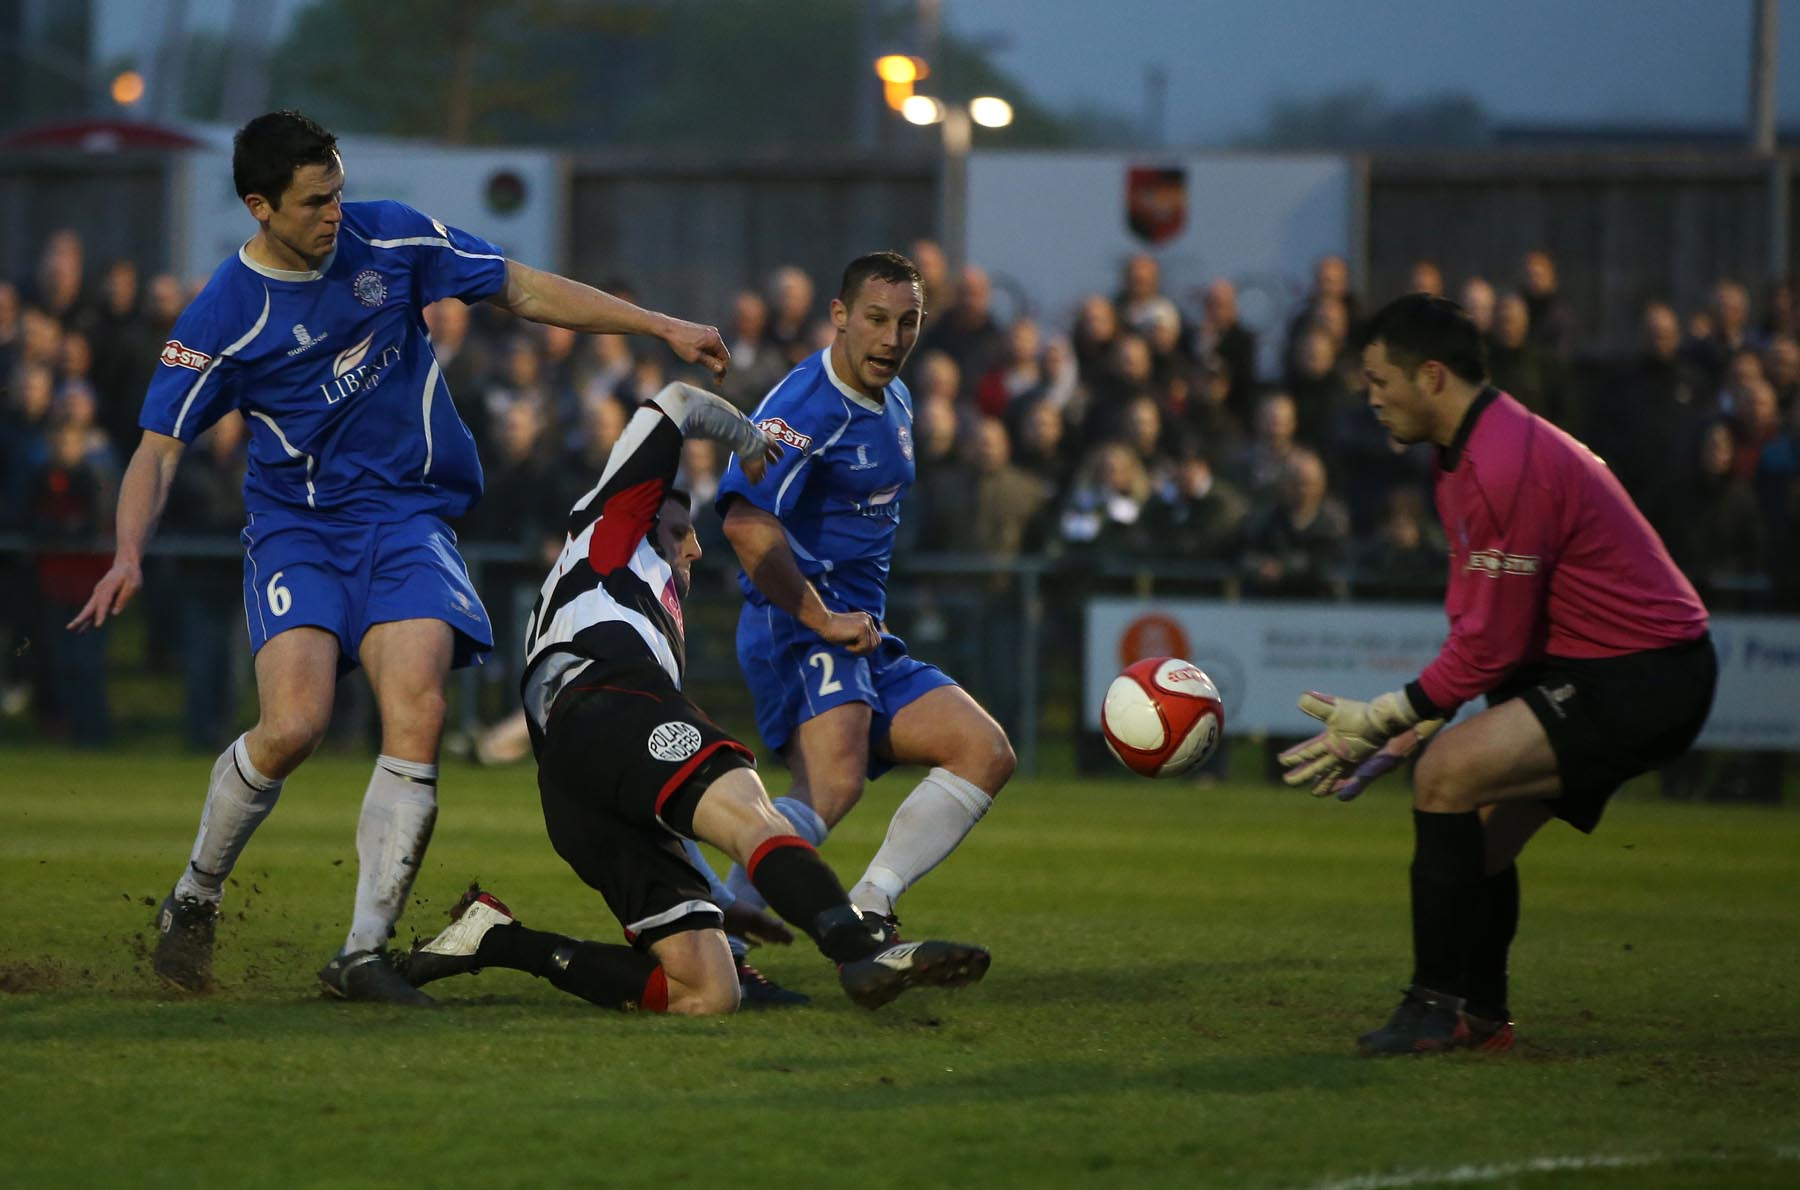 Match report: Darlington 0 Ramsbottom 2